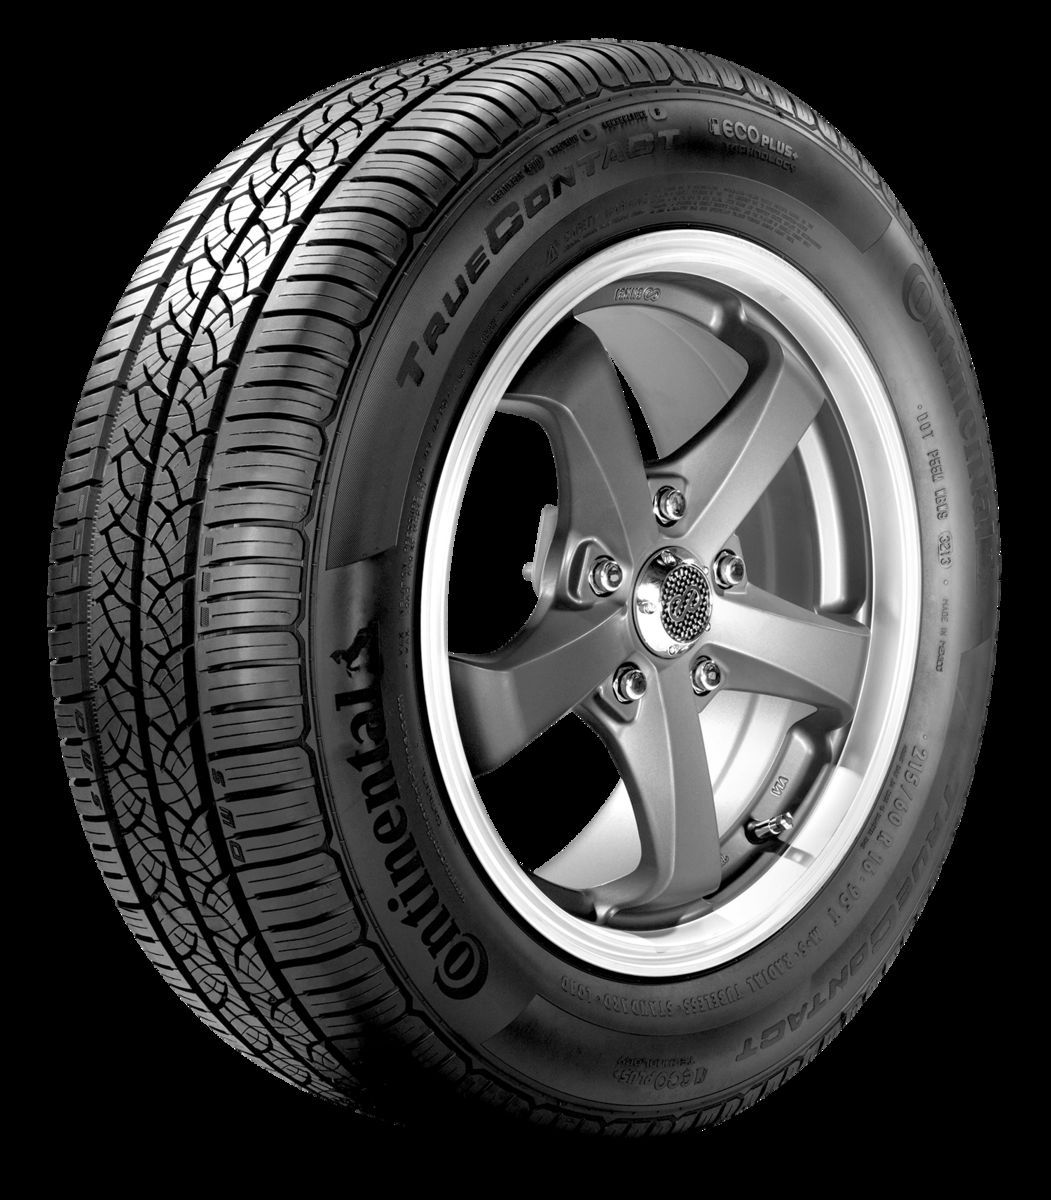 | Latest product from Continental Tire, TrueContact